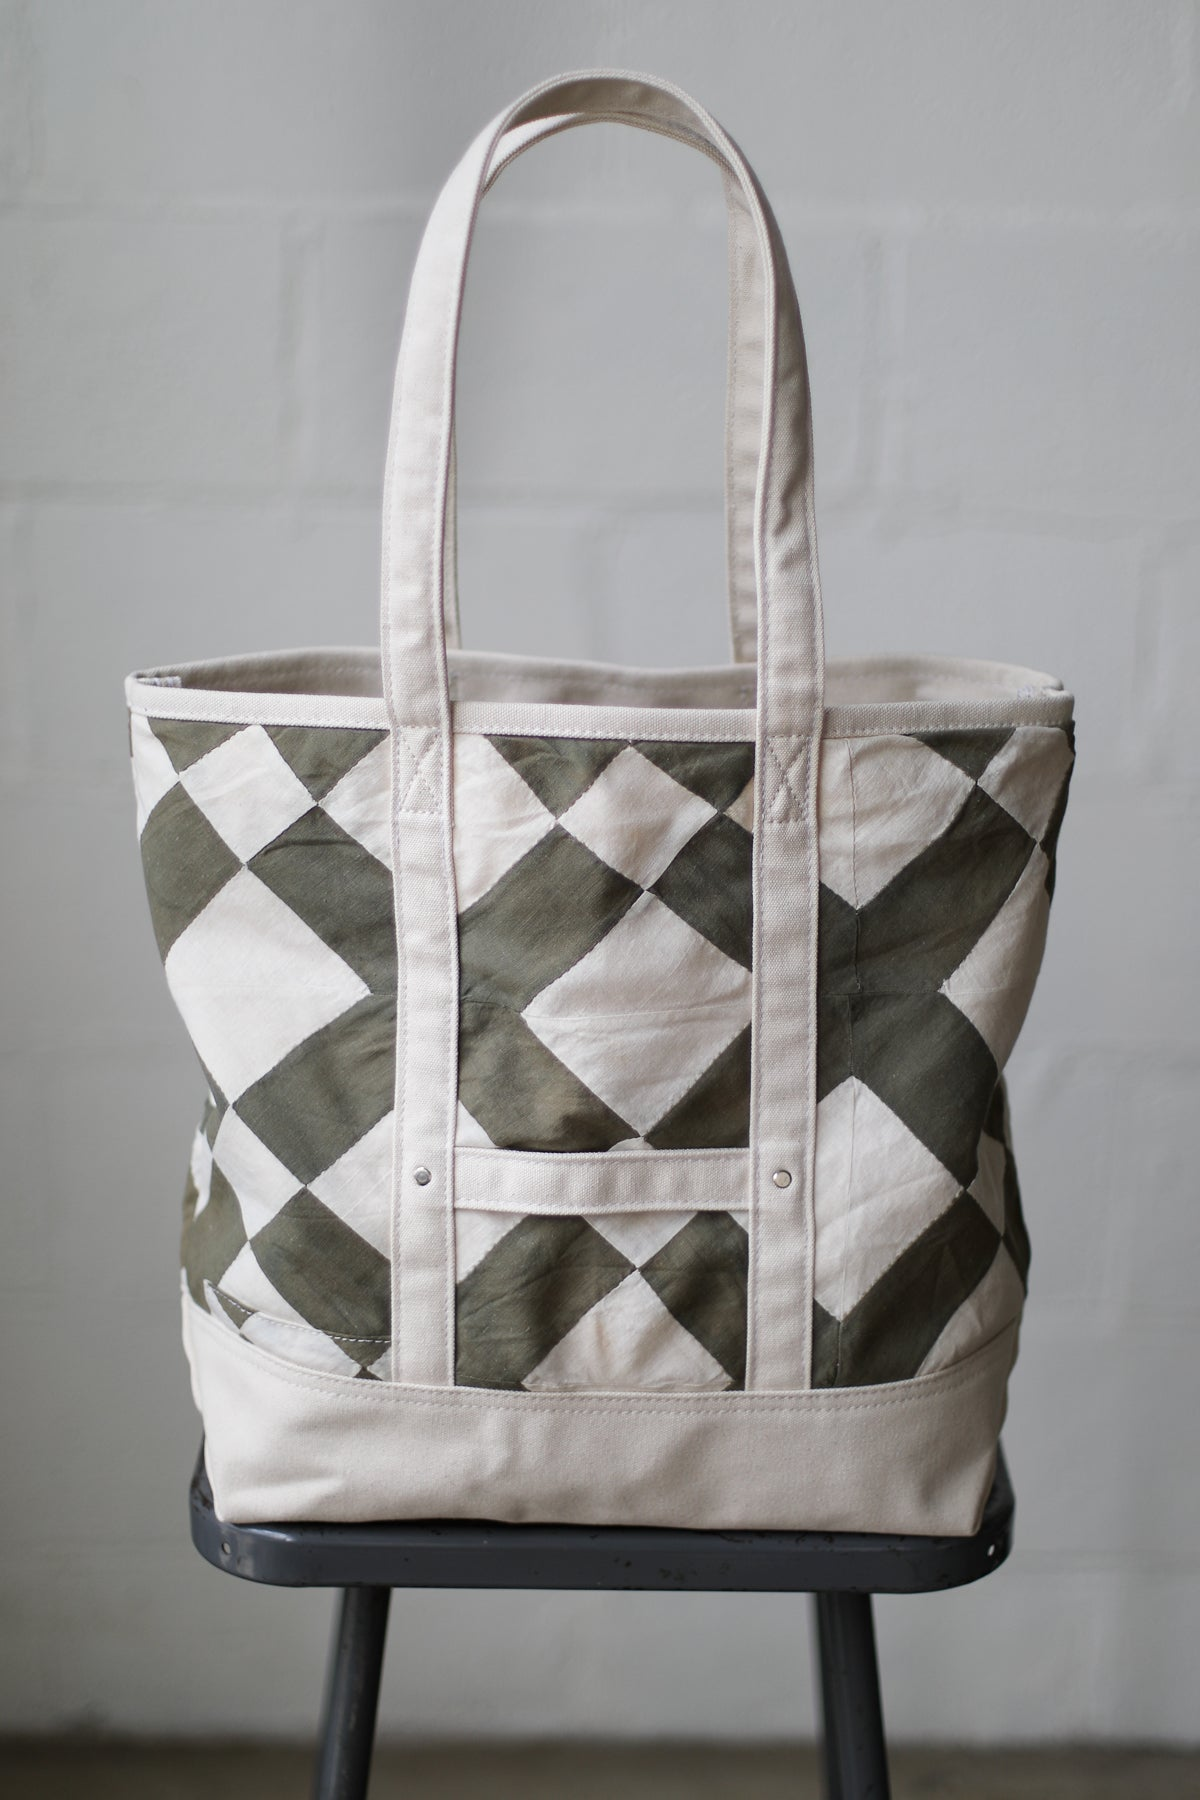 Reclaimed Market Tote No. 001